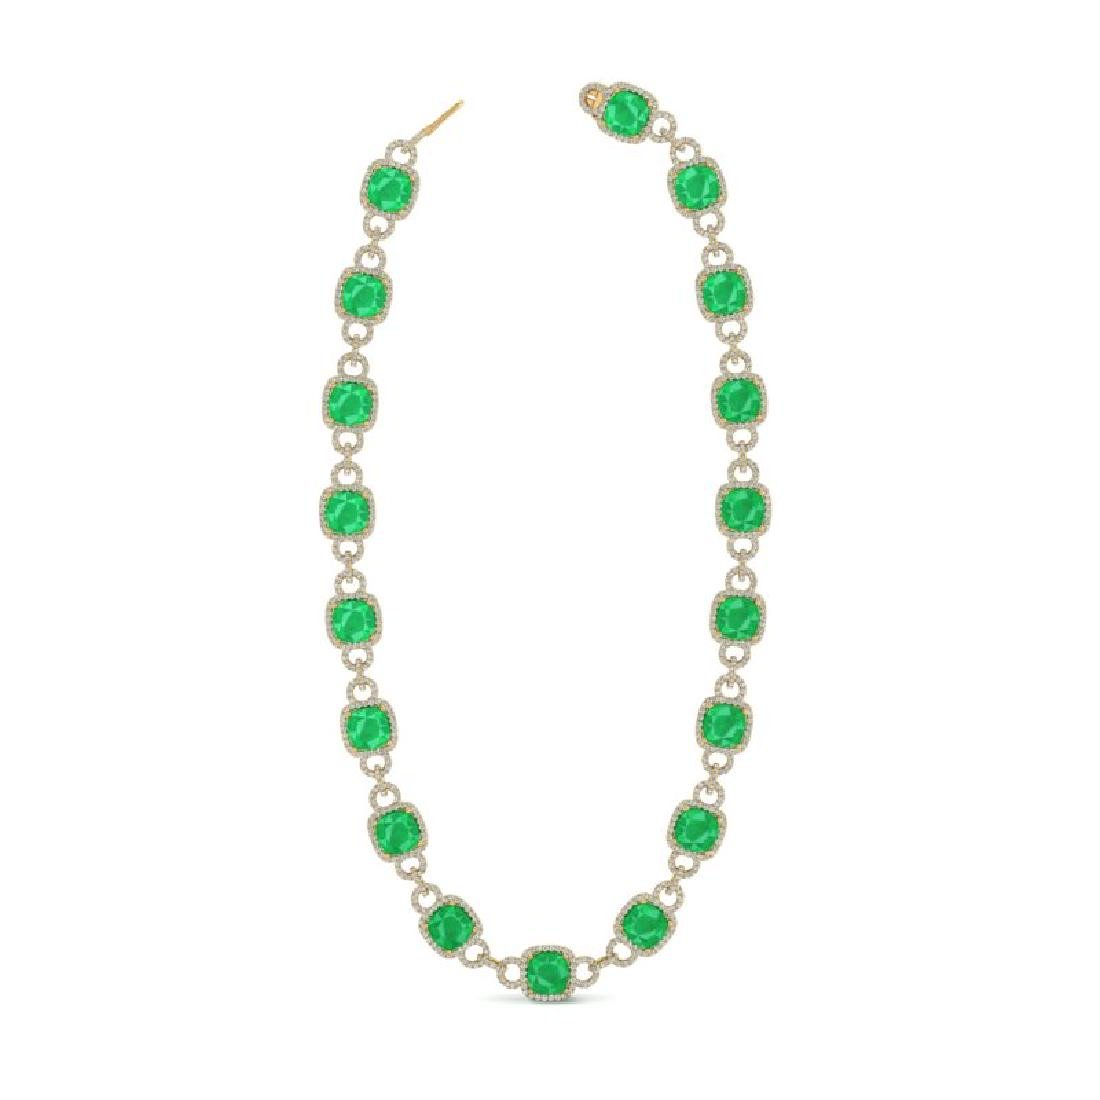 56 CTW Emerald & VS/SI Diamond Necklace 14K Yellow Gold - 2